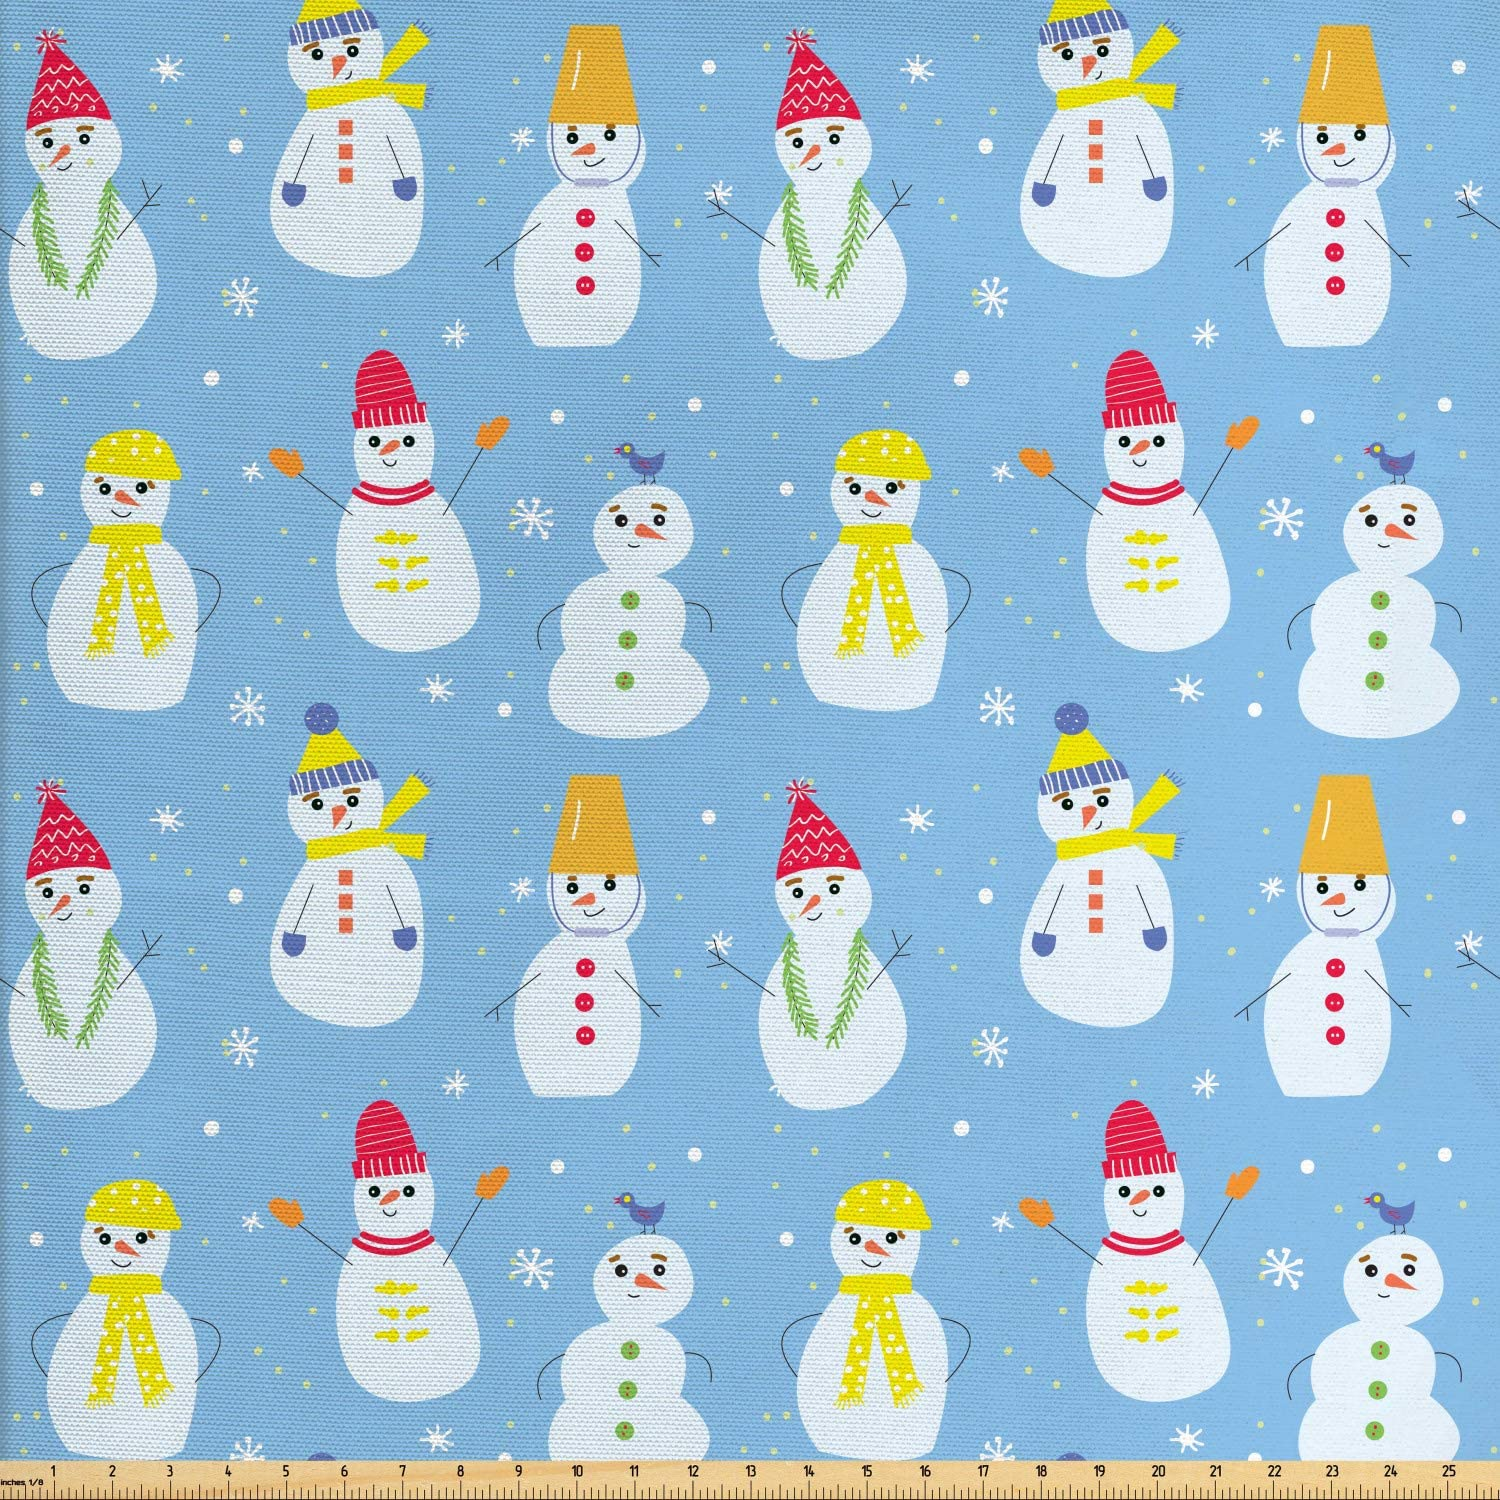 Ambesonne Snowman Fabric by The Yard, Snow Made Silhouettes with Colorful Winter Accessories Funny Design, Decorative Fabric for Upholstery and Home Accents, 1 Yard, Pale Blue and Multicolor